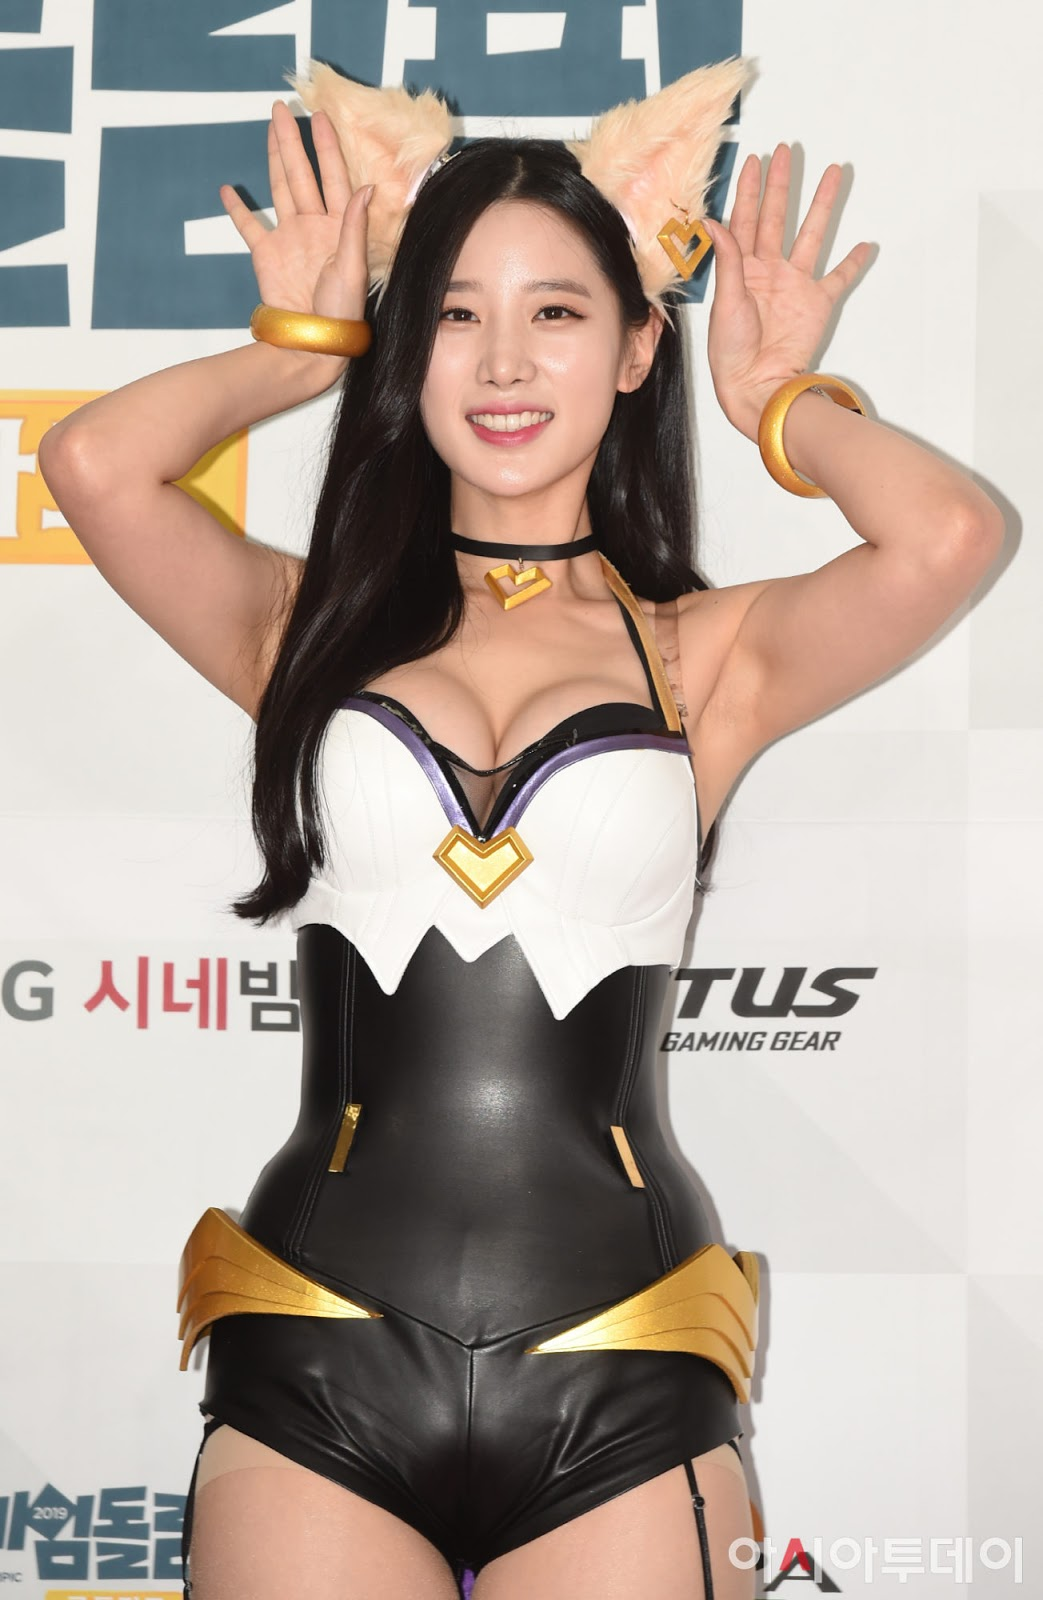 Berry Good Johyun (조현) League of Legends Ahri Cosplay at the Gamed Olympic event on 17 June 2019.